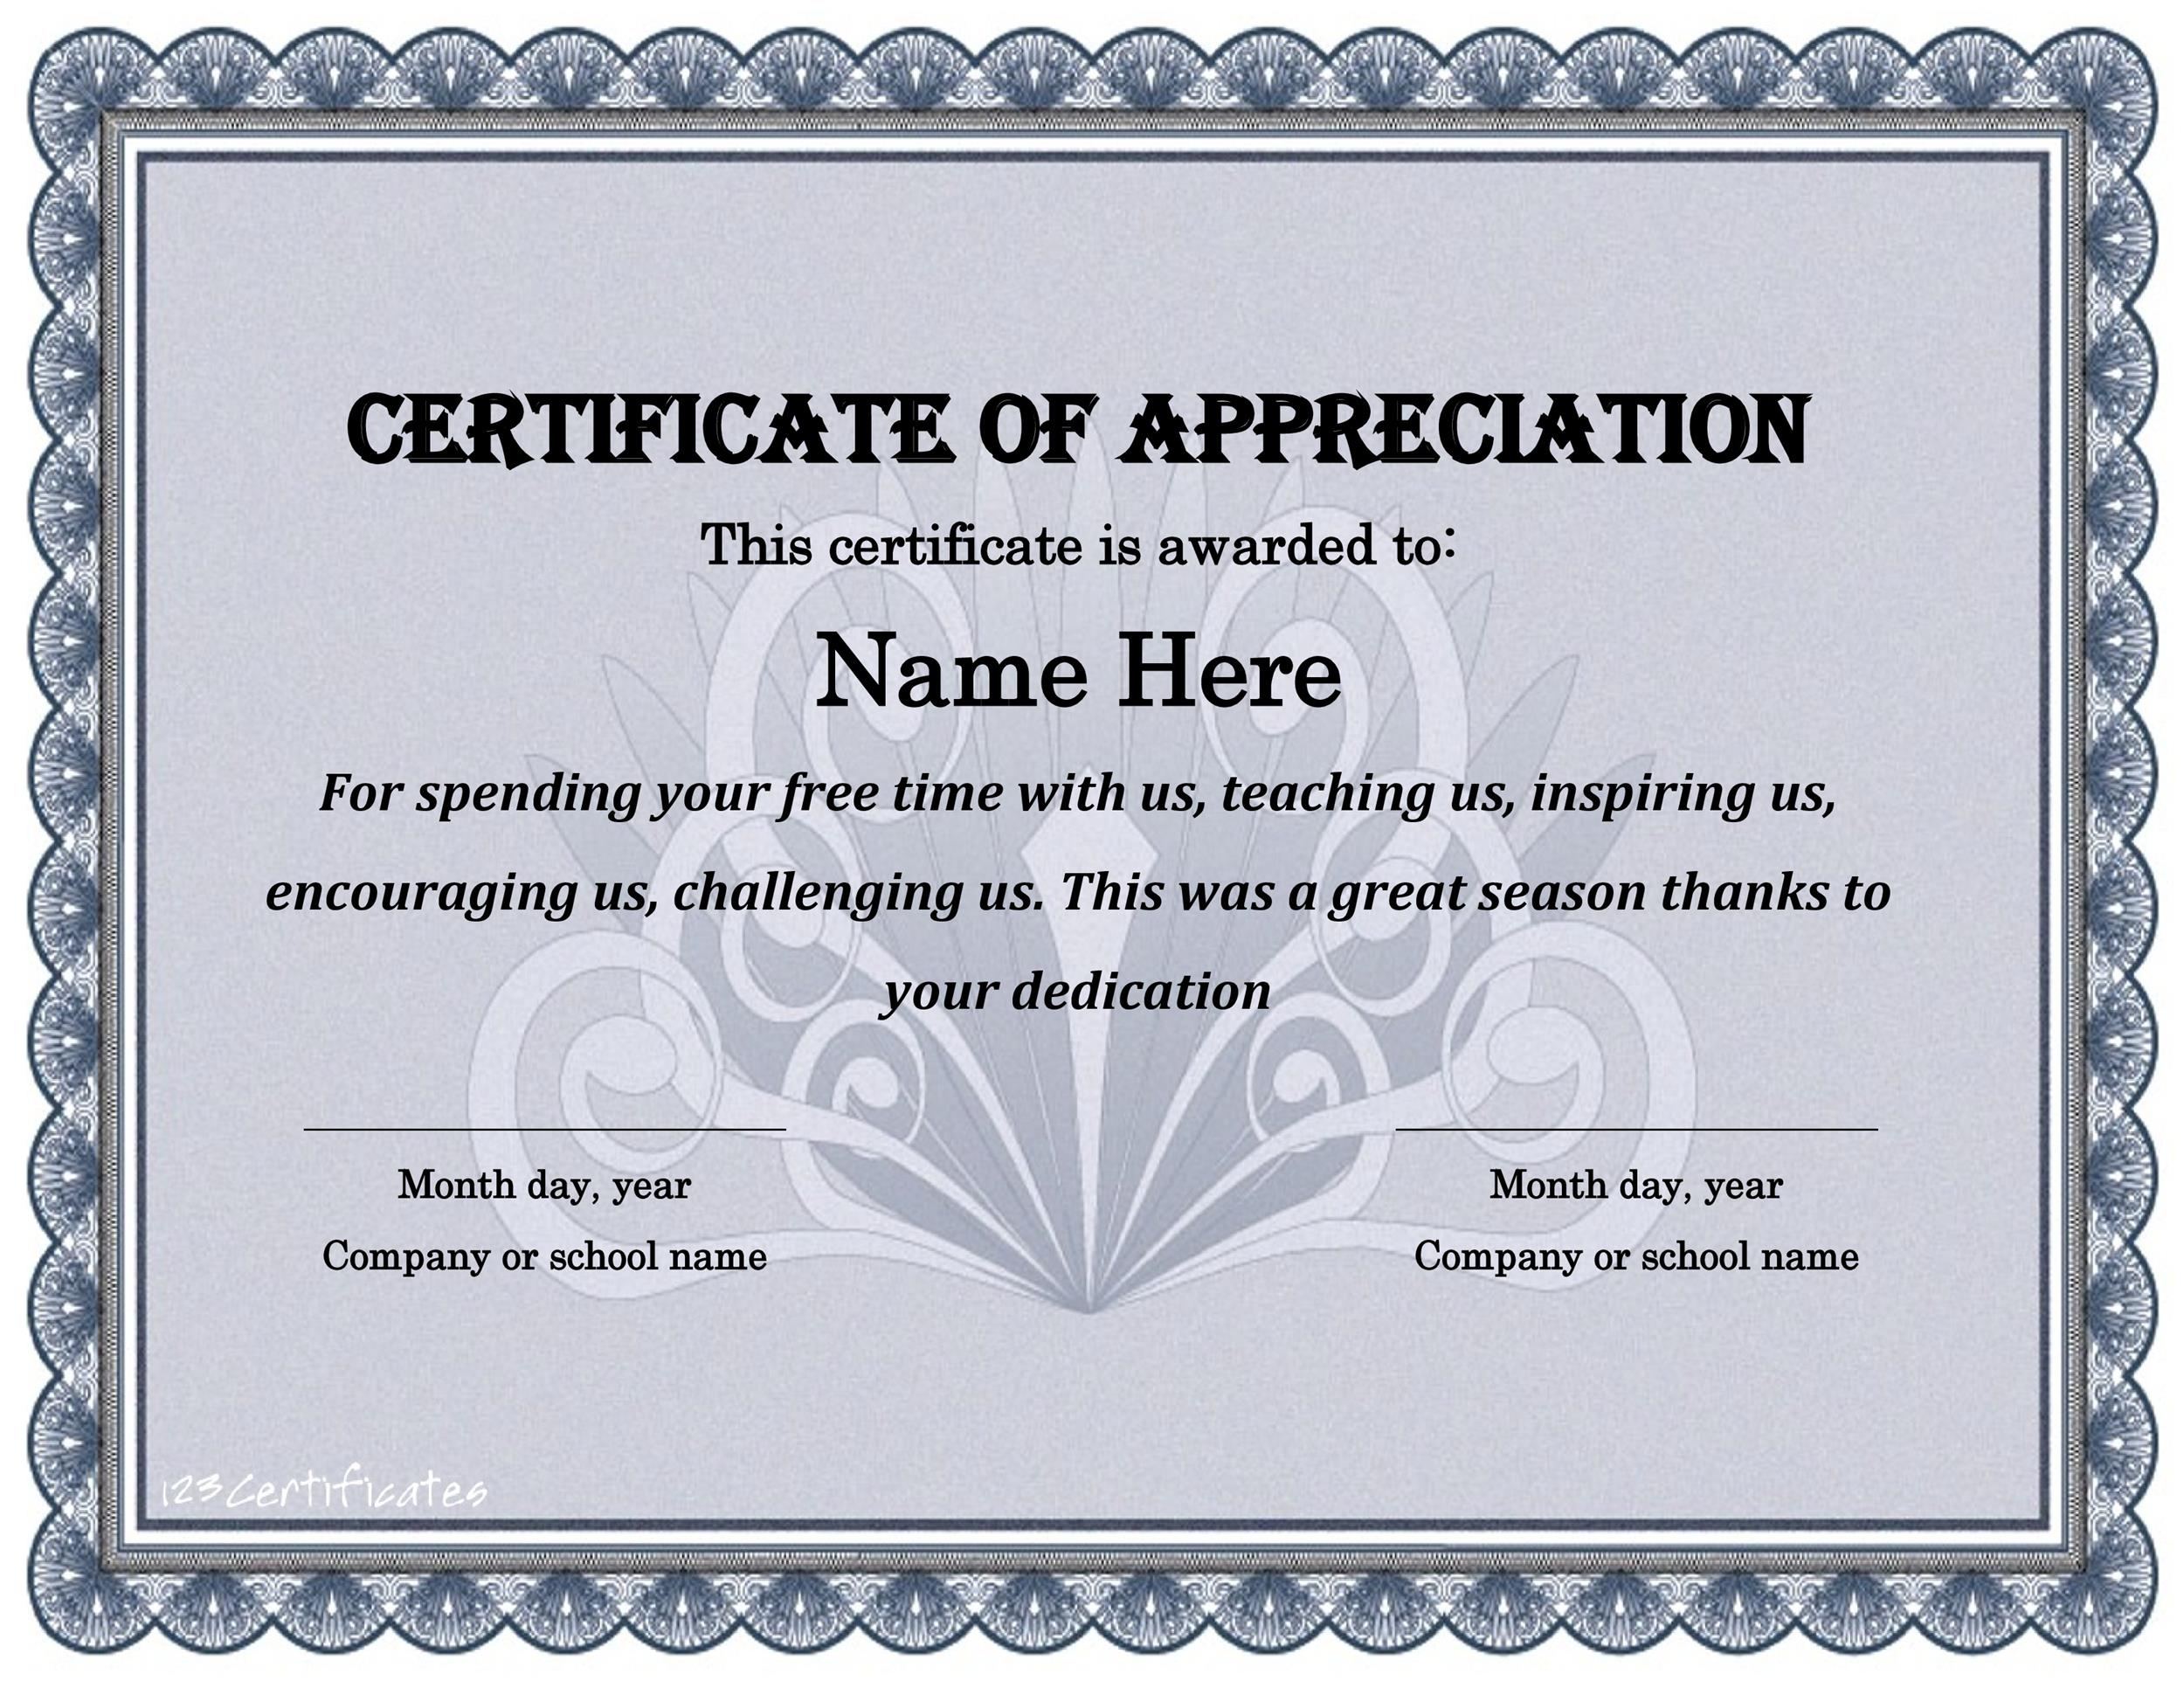 30 free certificate of appreciation templates and letters printable certificate of appreciation 21 yadclub